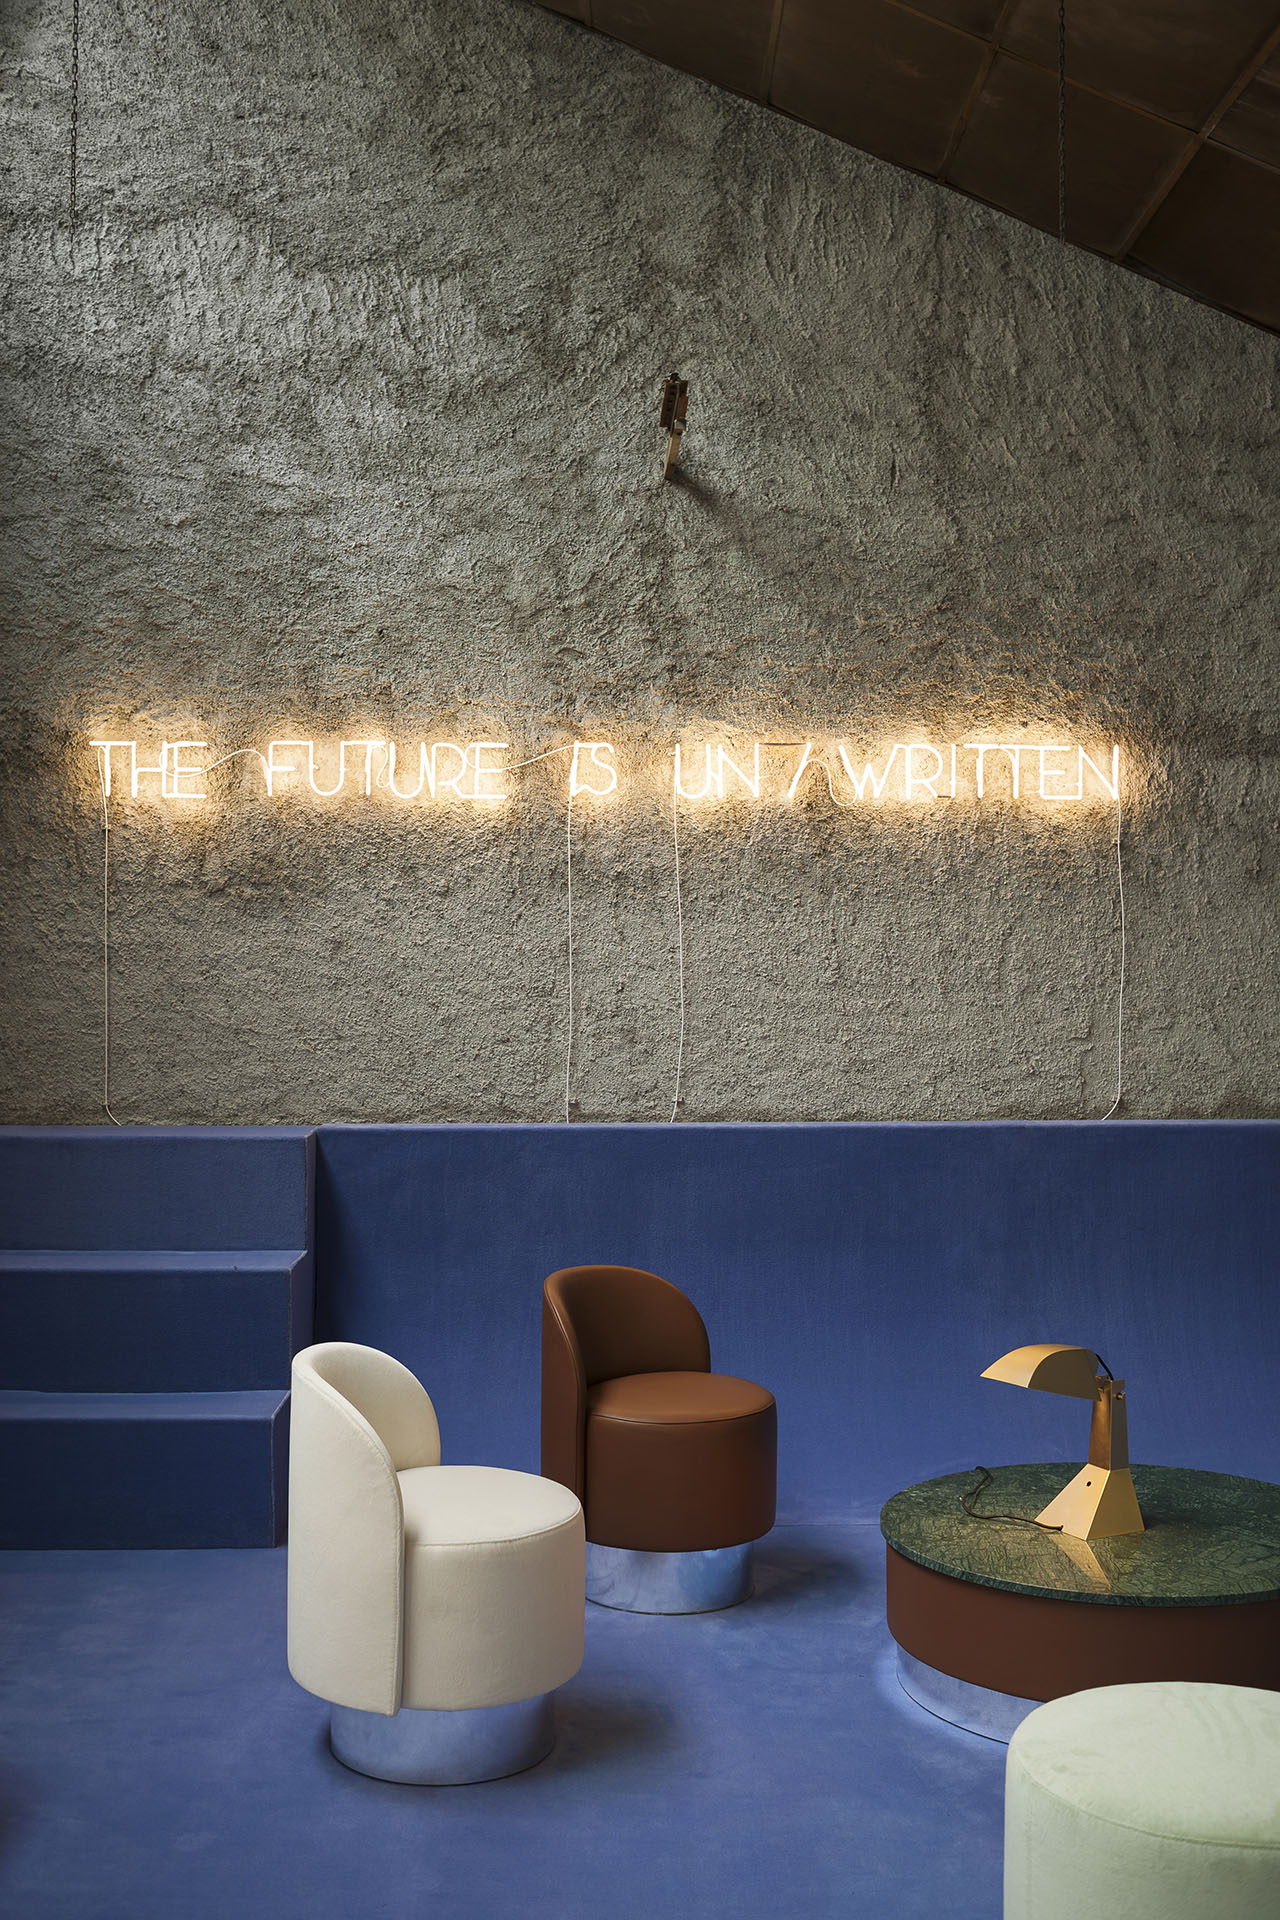 LES ARCANISTES. The Future is Un/Written by Studiopepe (Arianna Lelli Mami and Chiara Di Pinto). Photo by © Giuseppe Dinnella. Featured products:Armchair / Pouf _ Tacchini Italia | Table Lamp _ Tacchini Italia | Neon Light _ Tecnolux.